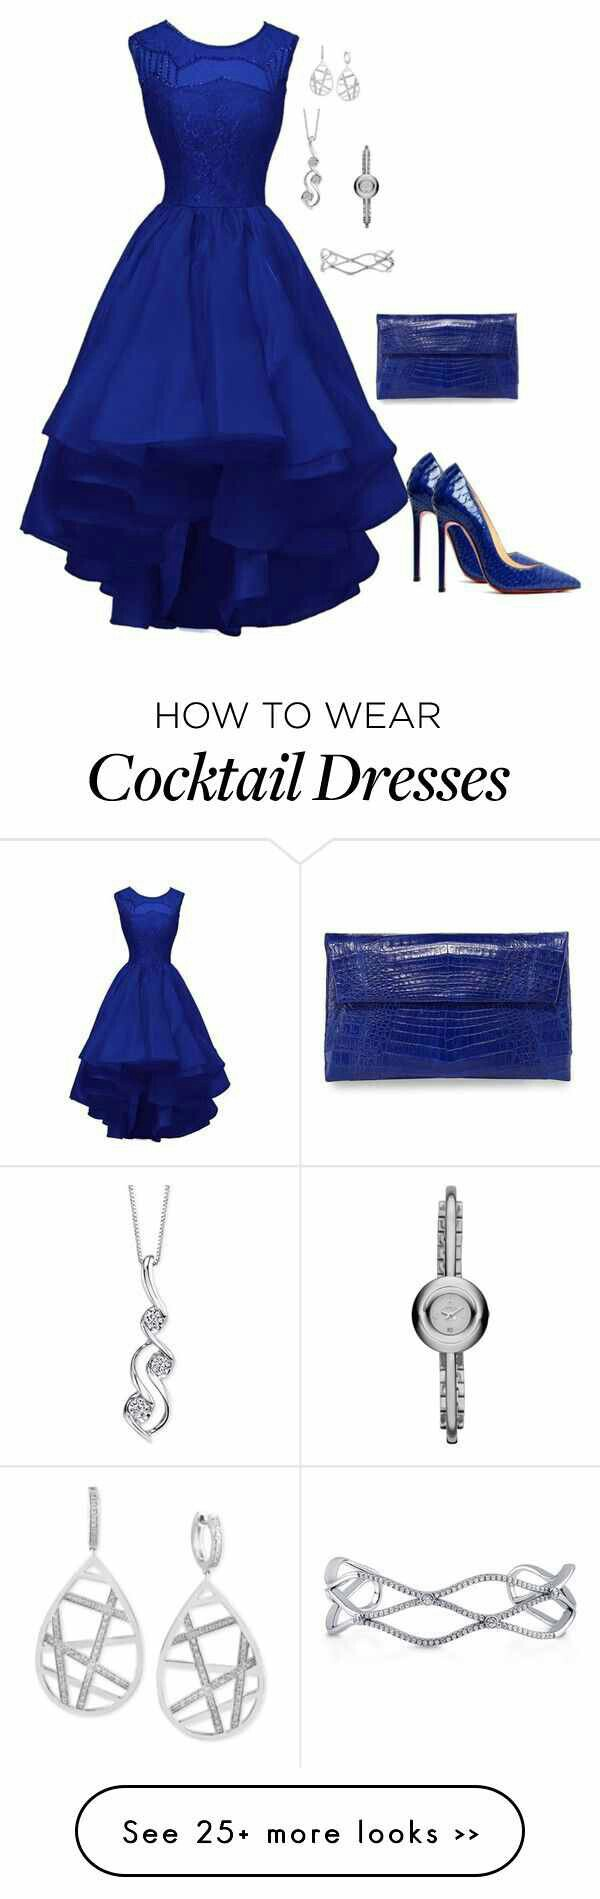 Pin by che co on the look book pinterest books